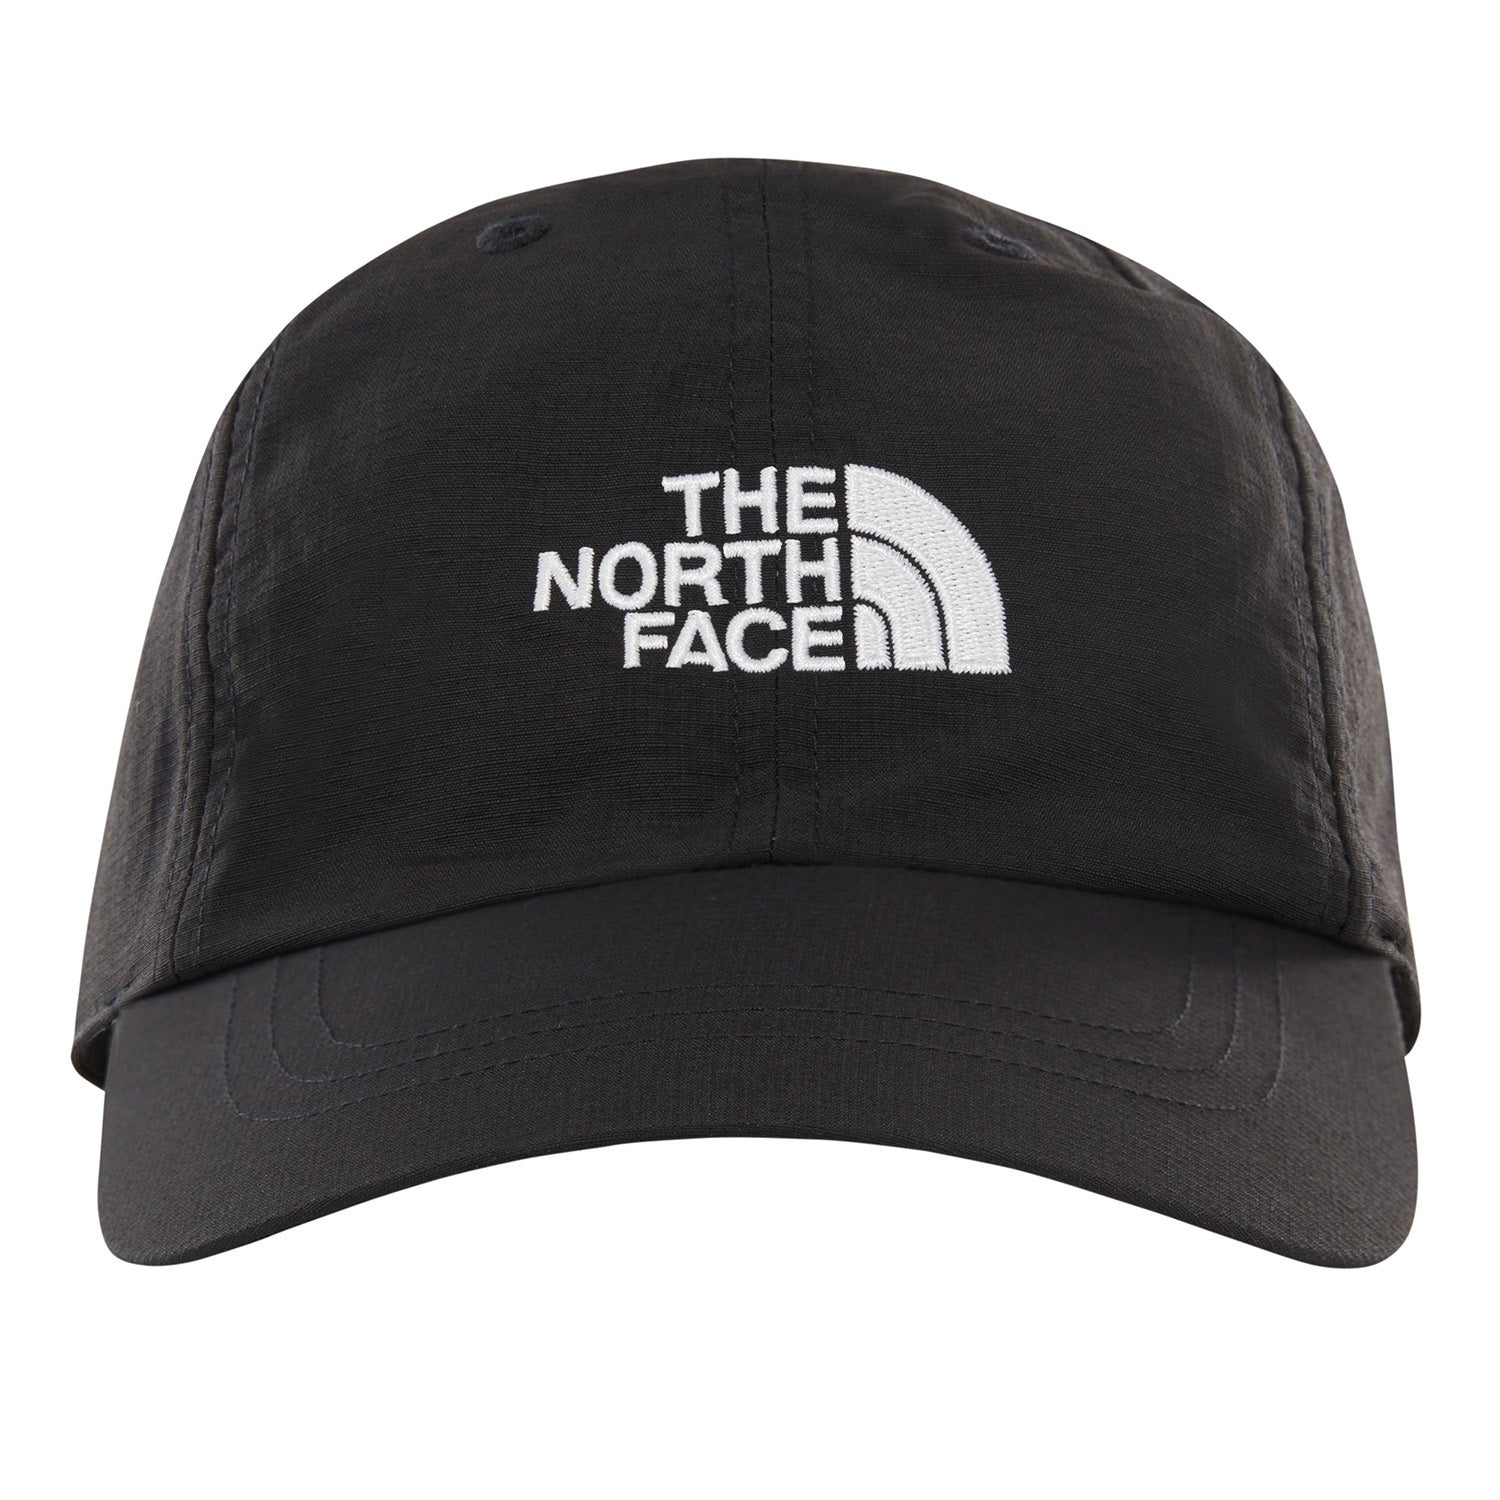 46c5cdc6ed3 The North Face Youth Horizon Kids Headwear Cap - Tnf Black White All ...